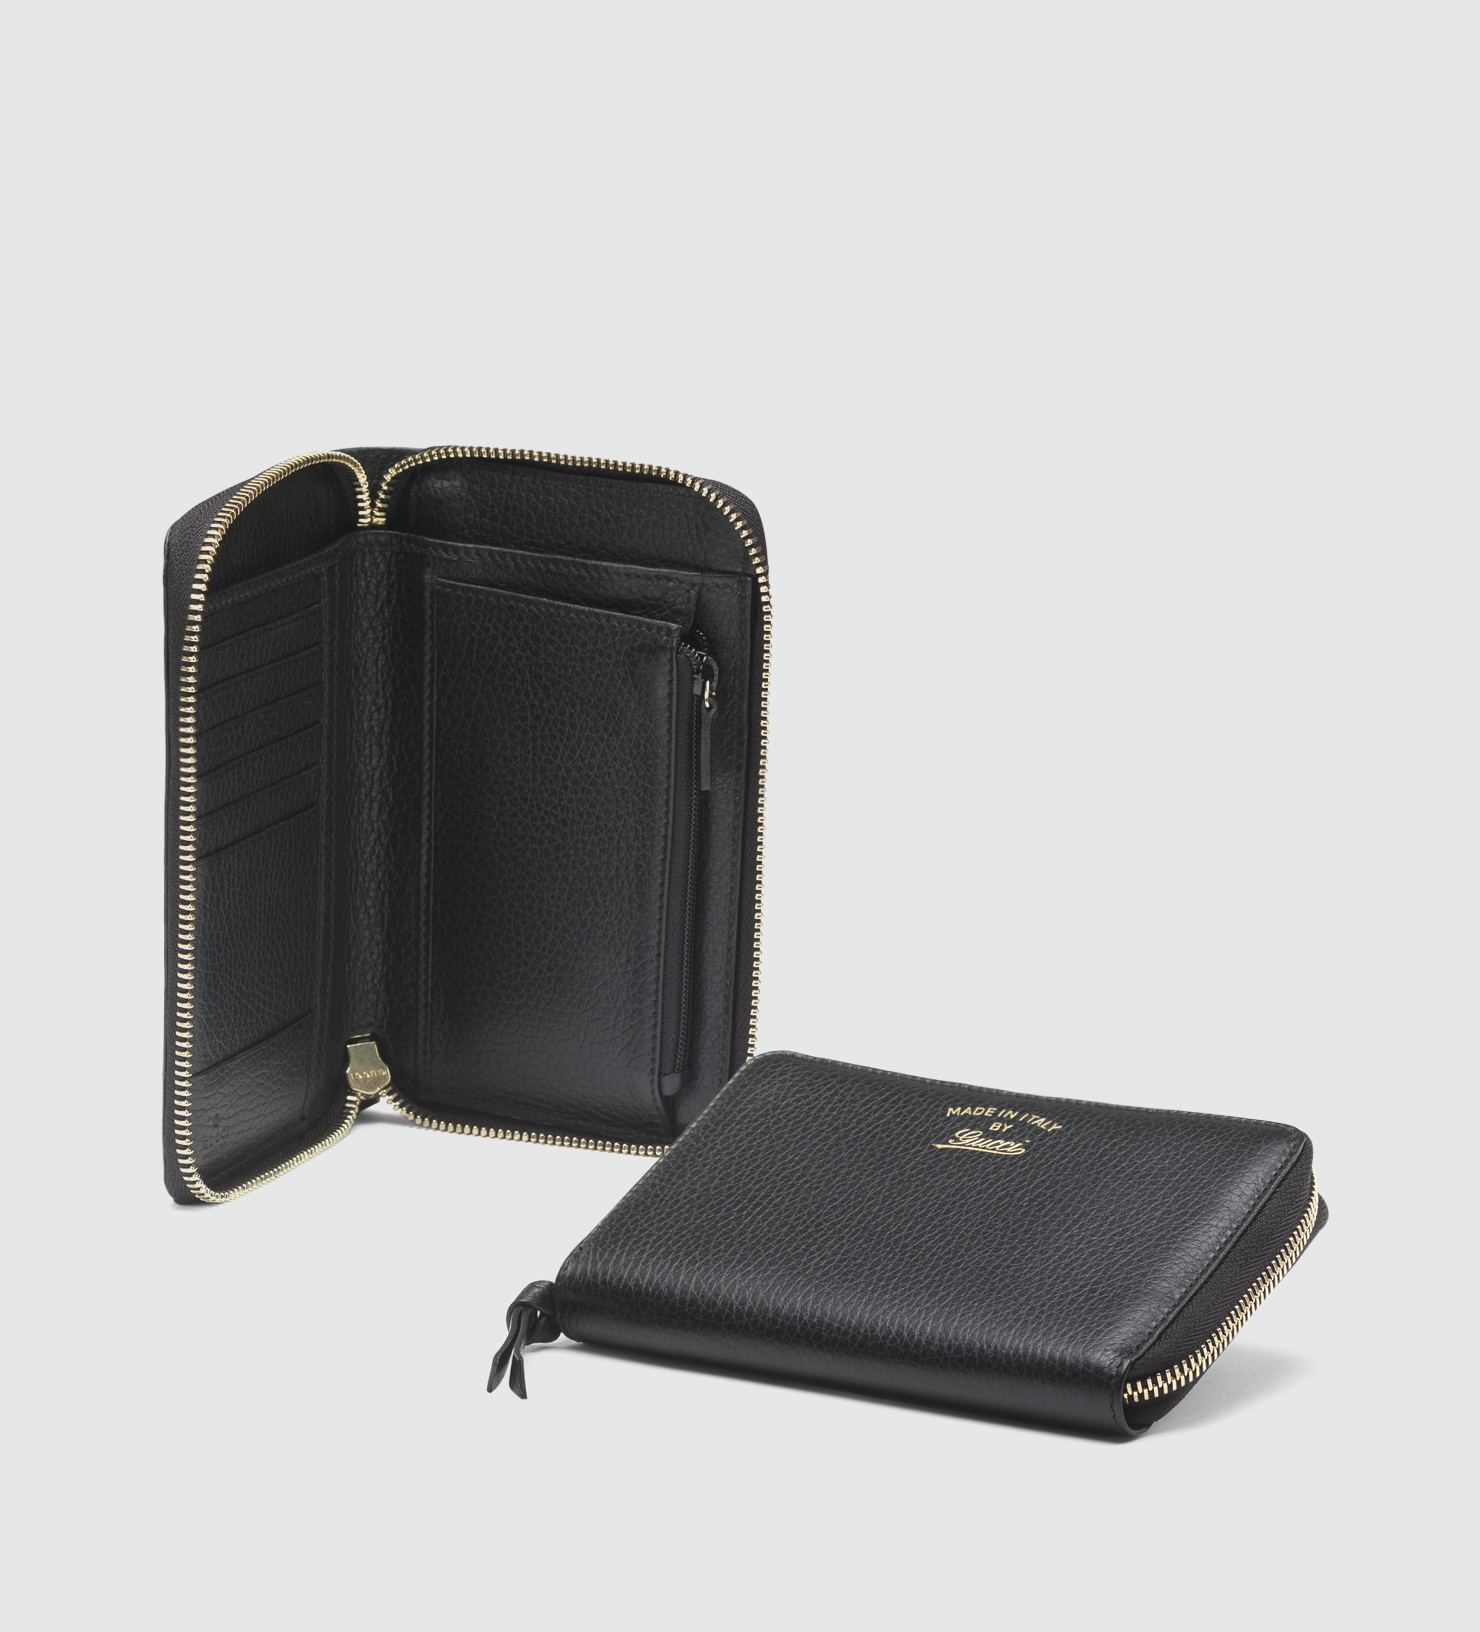 7a5d6c2befab Gucci Swing Leather Zip Around Wallet in Black - Lyst